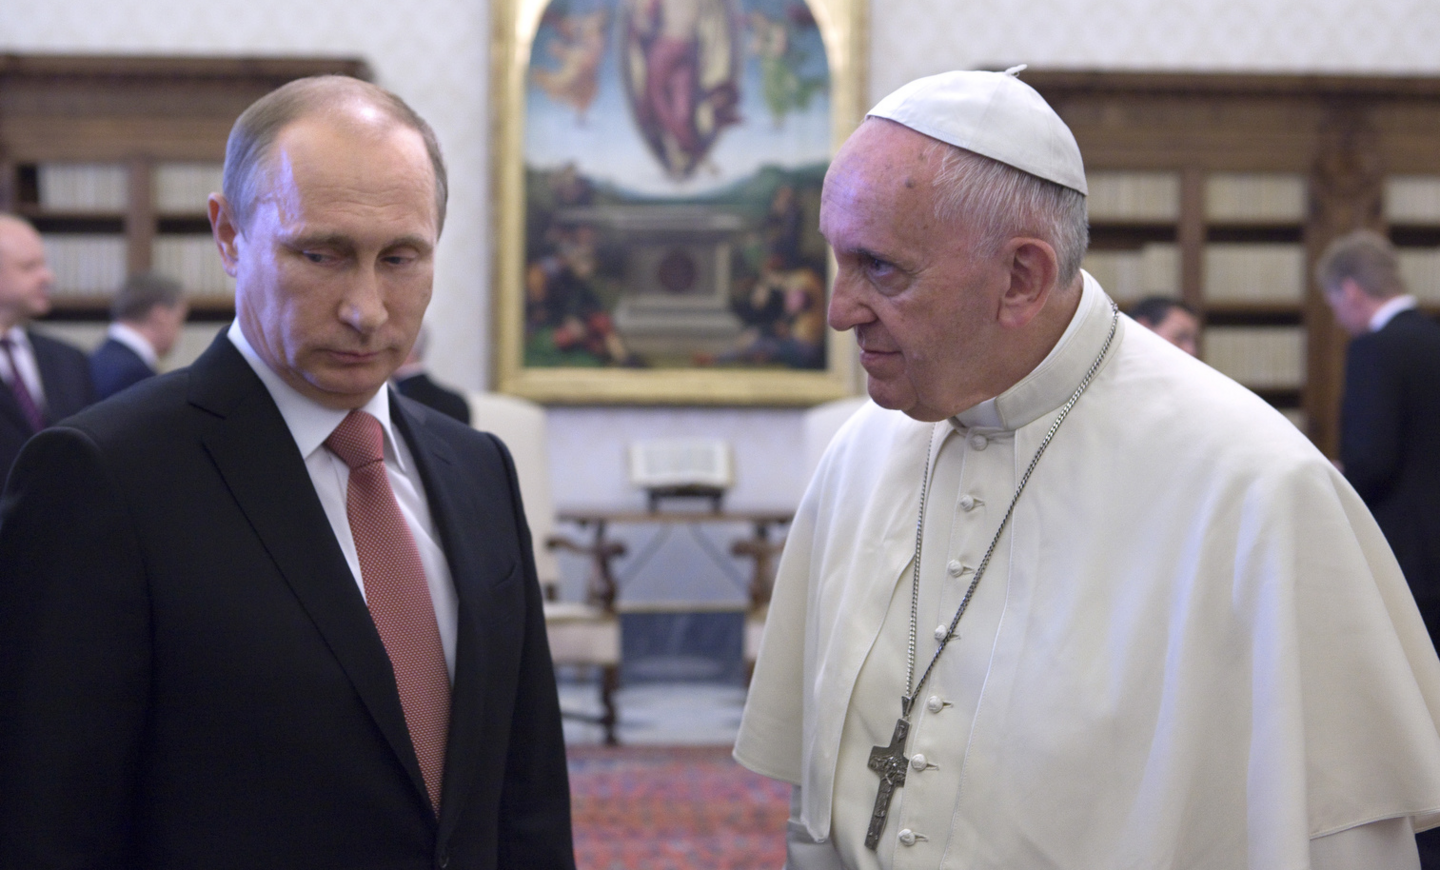 Russian President Vladimir Putin meets with Pope Francis at the Vatican in June 2015. (CNS photo/Maria Grazia Picciarella, pool)